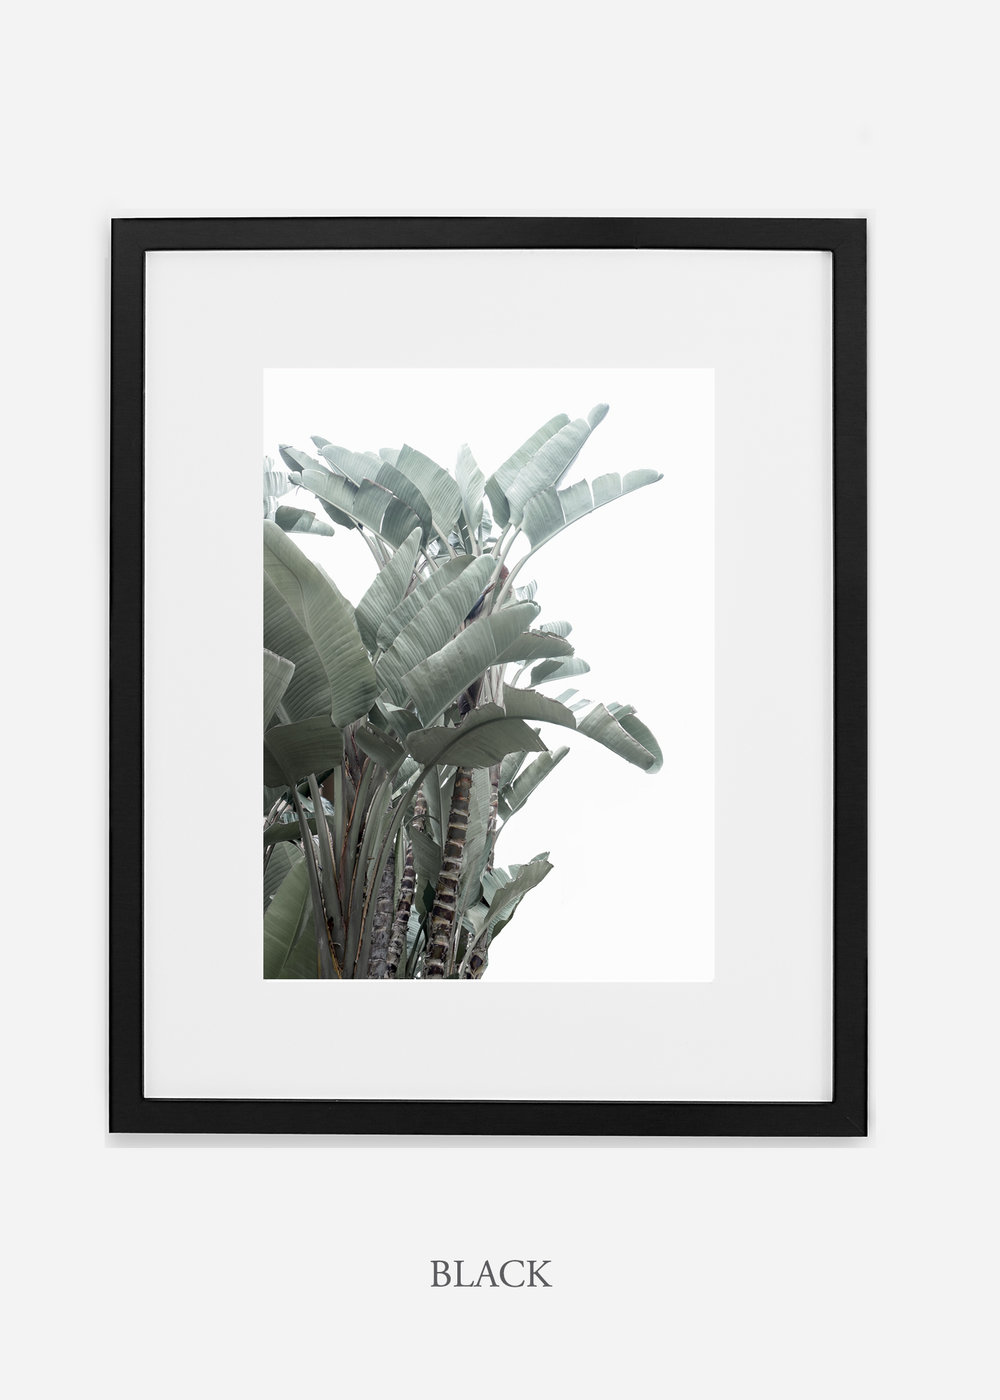 wildercalifornia_blackframe_WinterWhite_BananaLeafNo.1_Tropical_LosAngeles_Art_HomeDecor_interiordesign_design.jpg